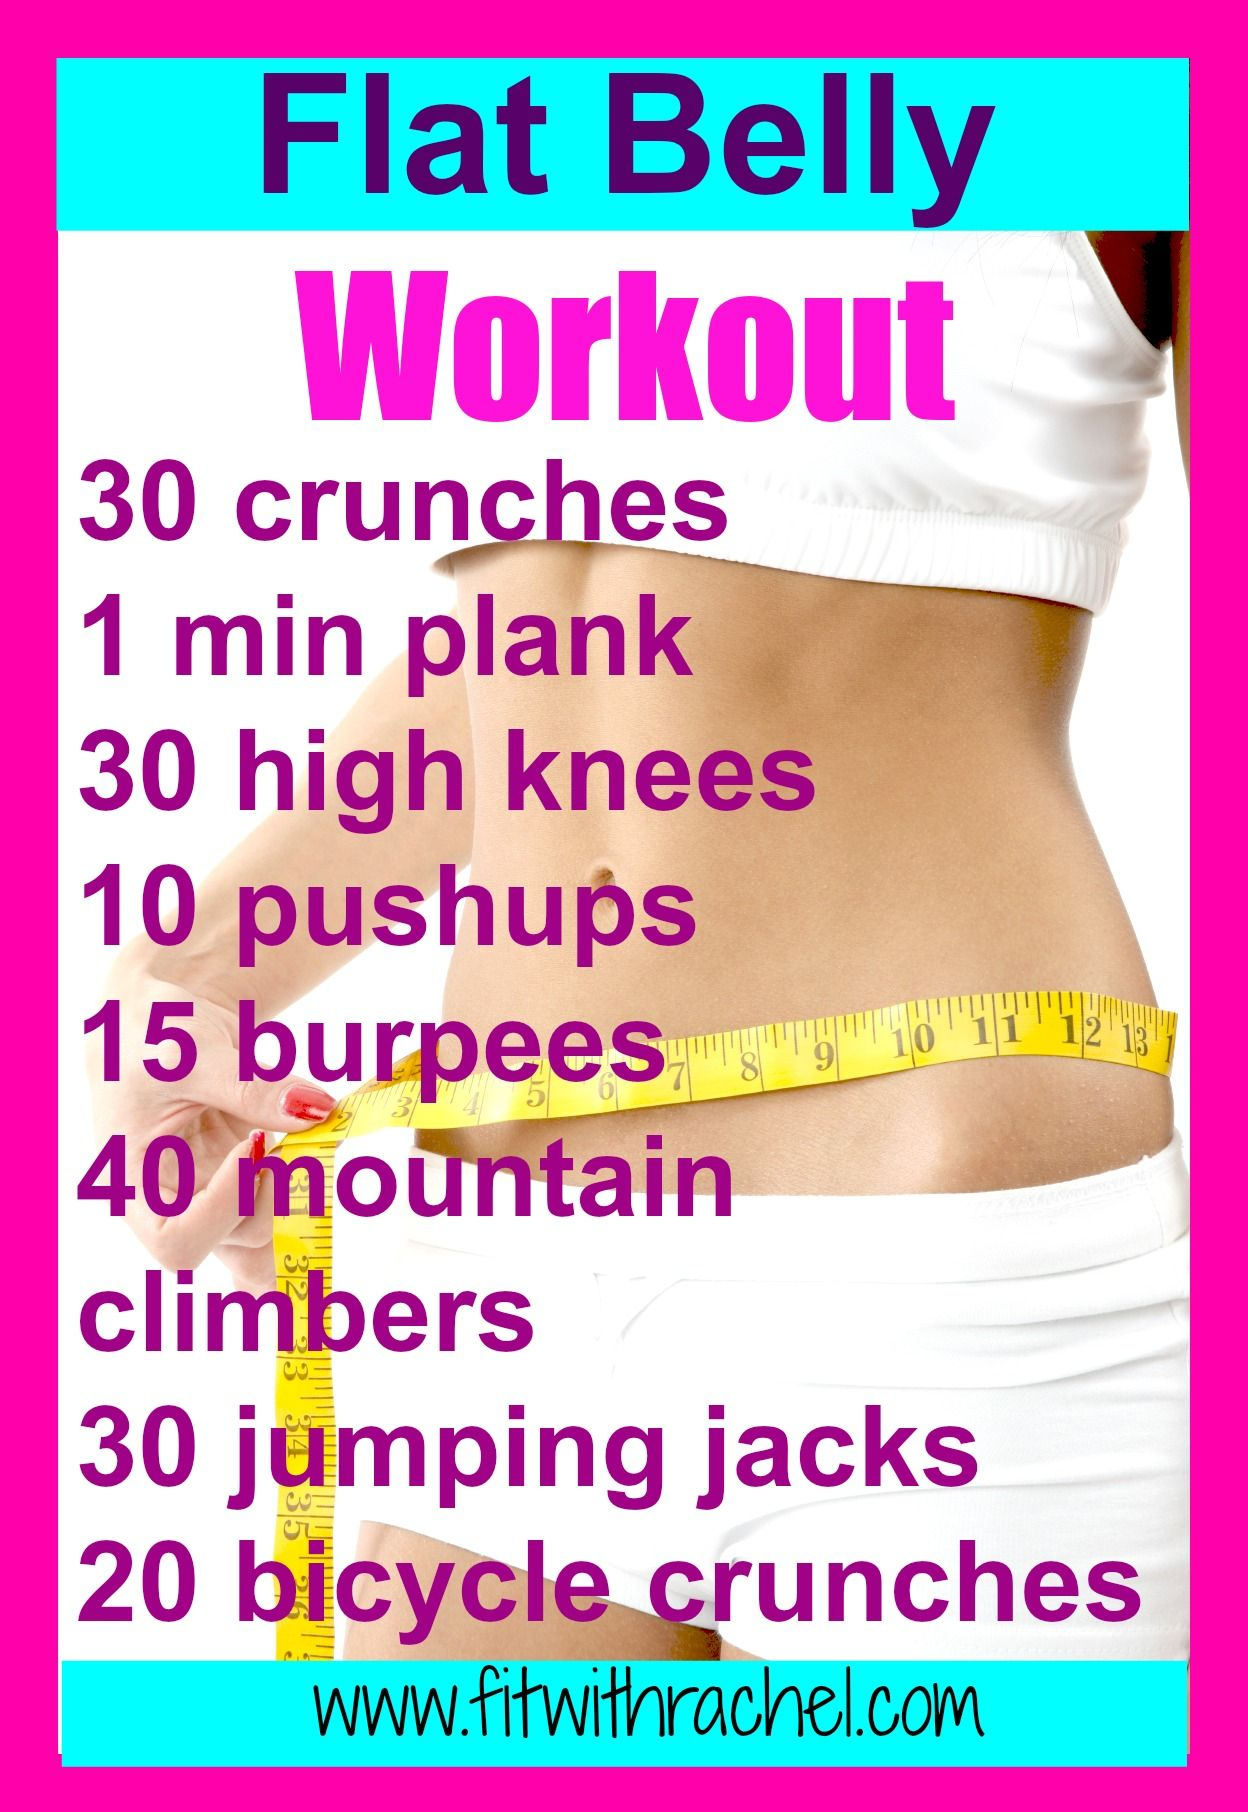 Flat Belly Workout | Flat belly workout, Flat belly and ...